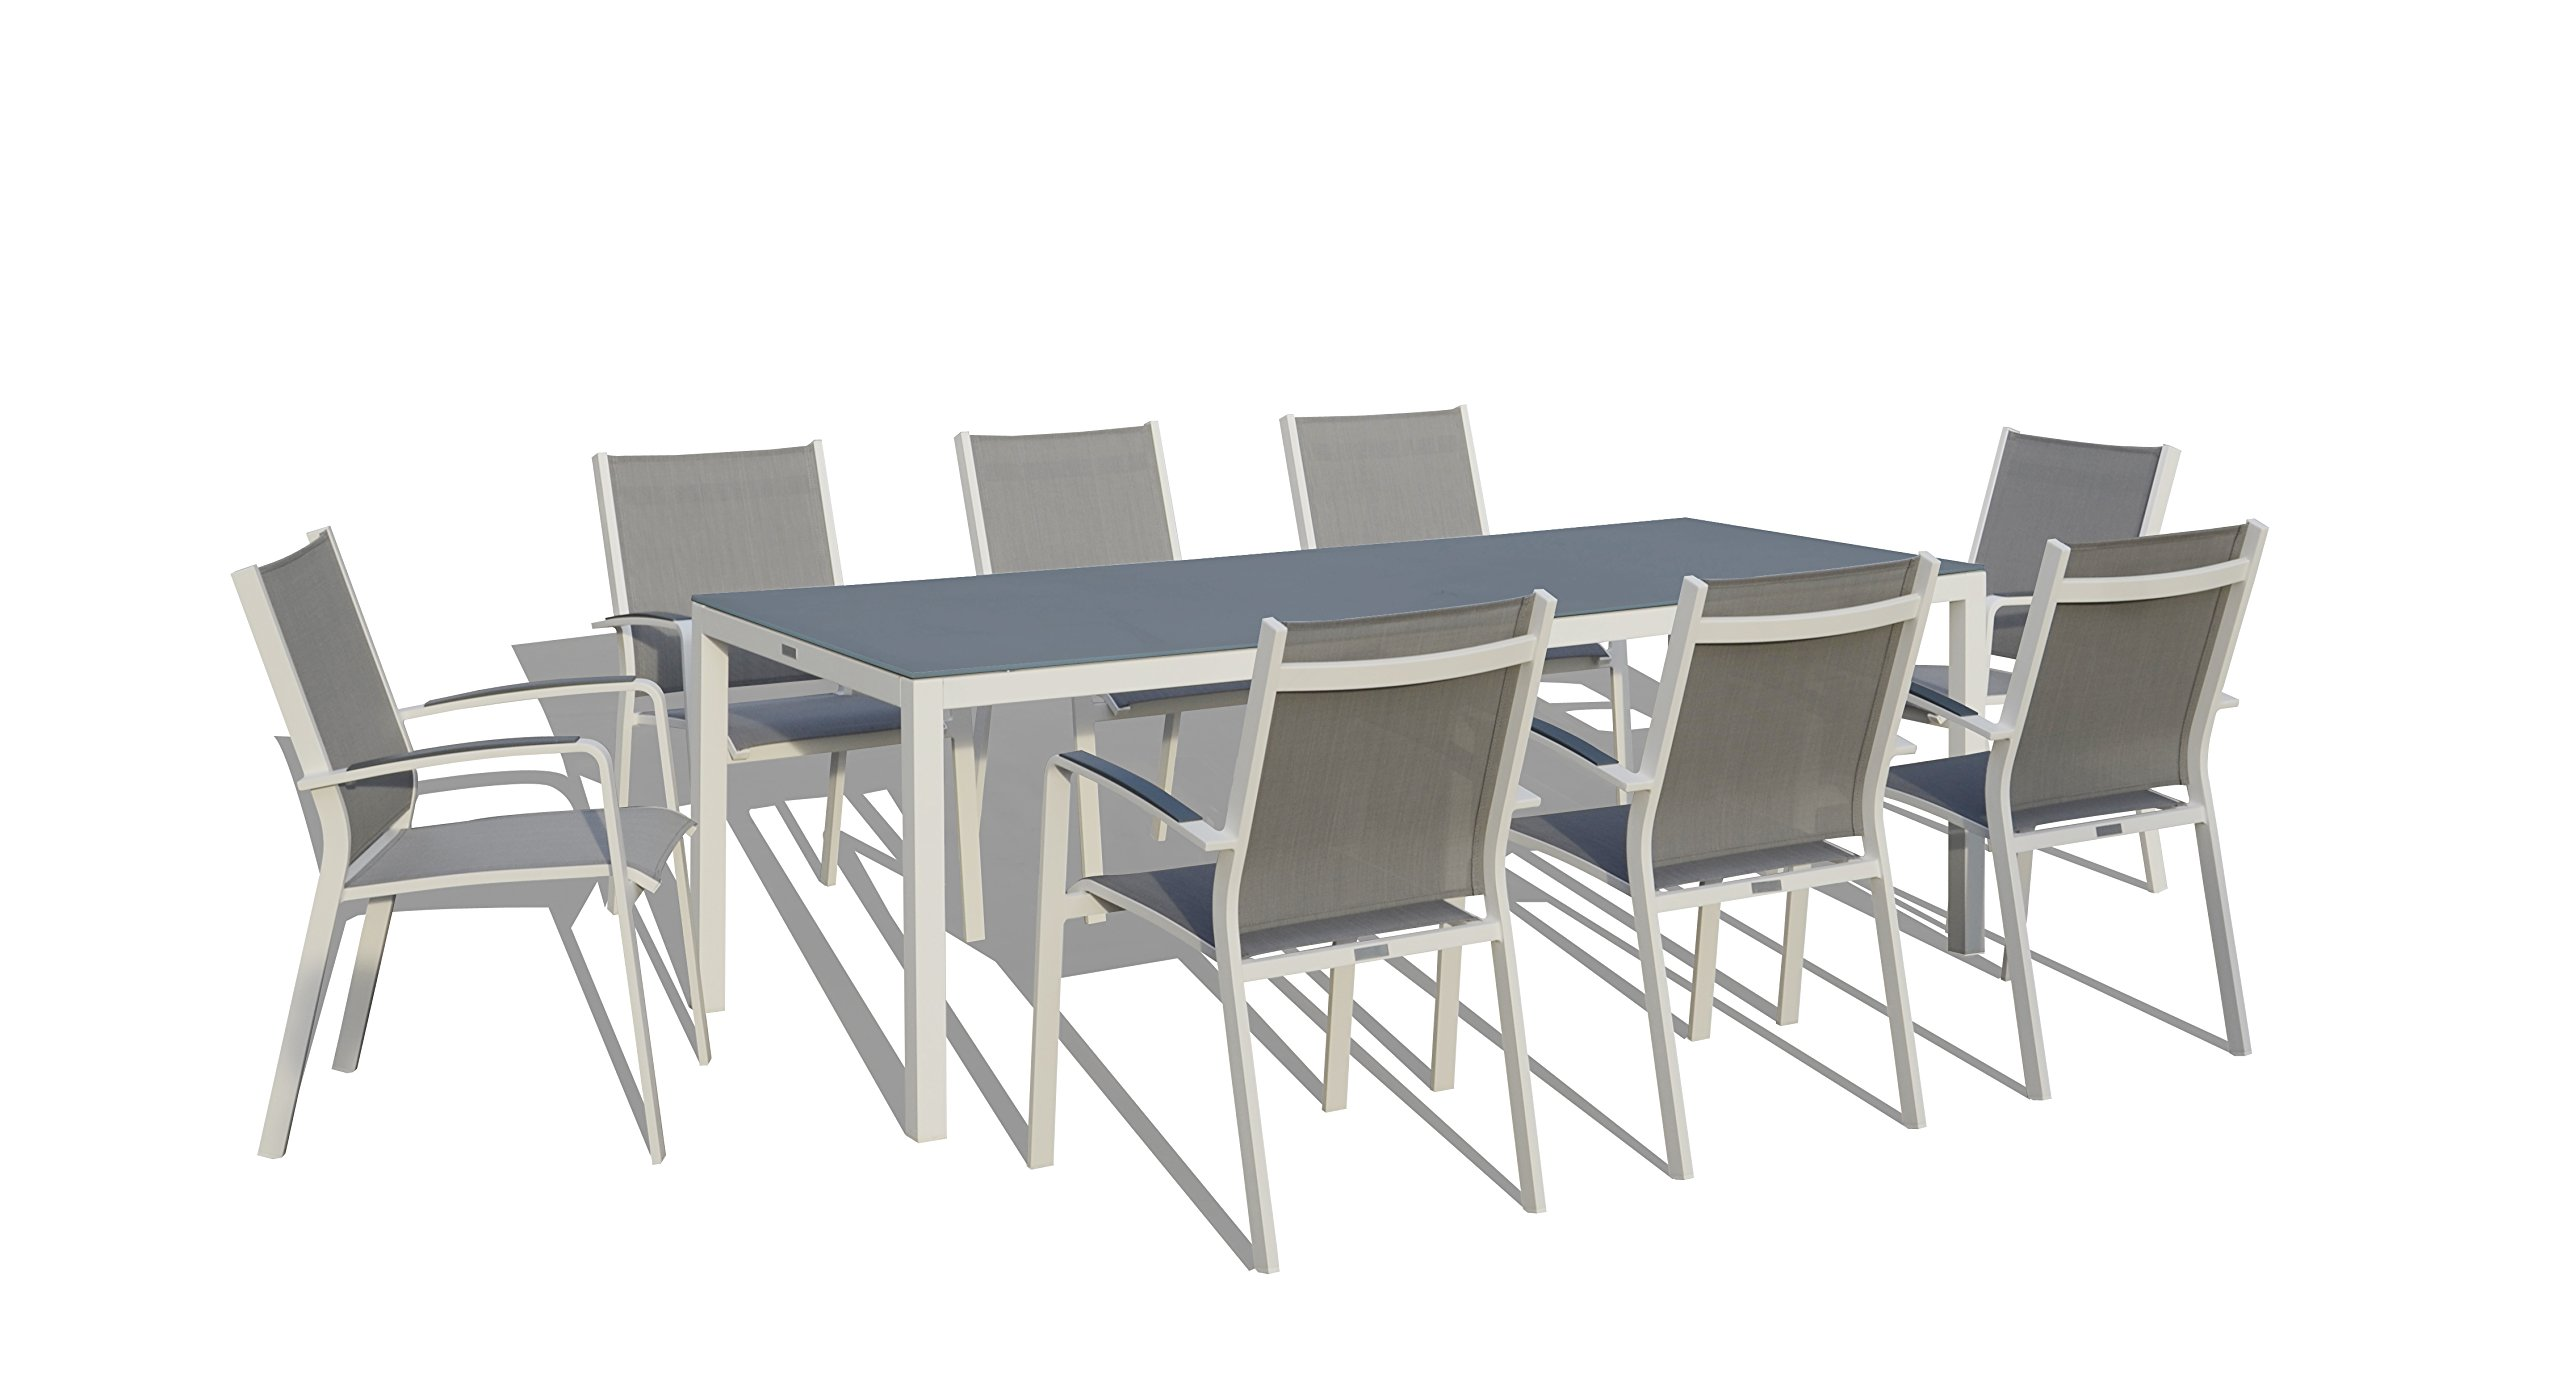 UrbanFurnishing.net - 9 Piece Modern Outdoor Patio Dining Set - White/Gray - Ultra Modern Luxury Design with plenty of seating White Powdercoated Aluminum Frame with Gray Matte frosted glass top table Chairs are made from comfortable woven sling material and stackable - patio-furniture, dining-sets-patio-funiture, patio - 71r2q7K23AL -